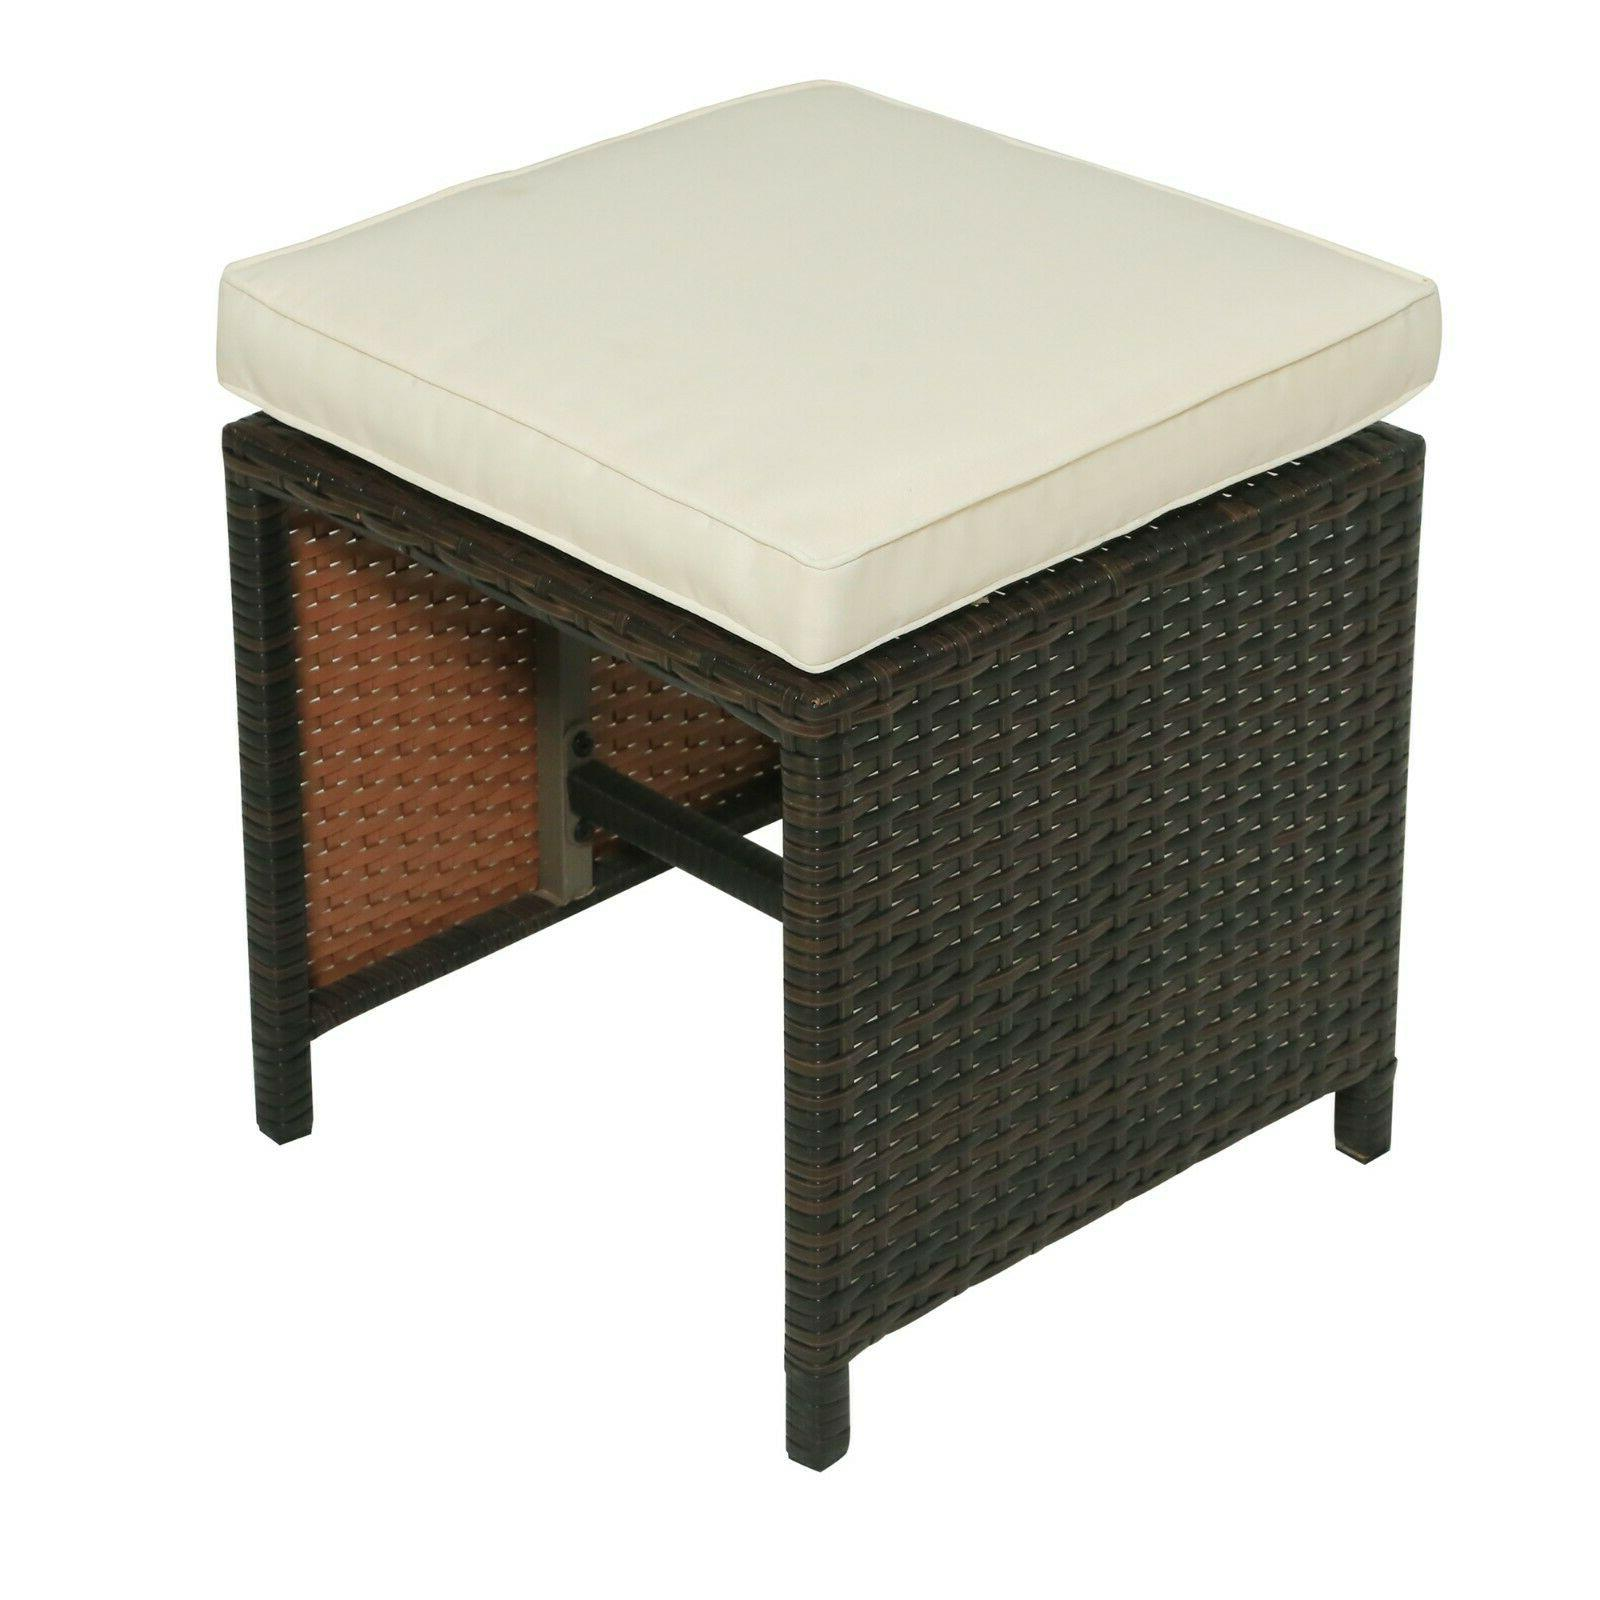 Outdoor Dining Table Rattan Patio Set Family Party Warranty